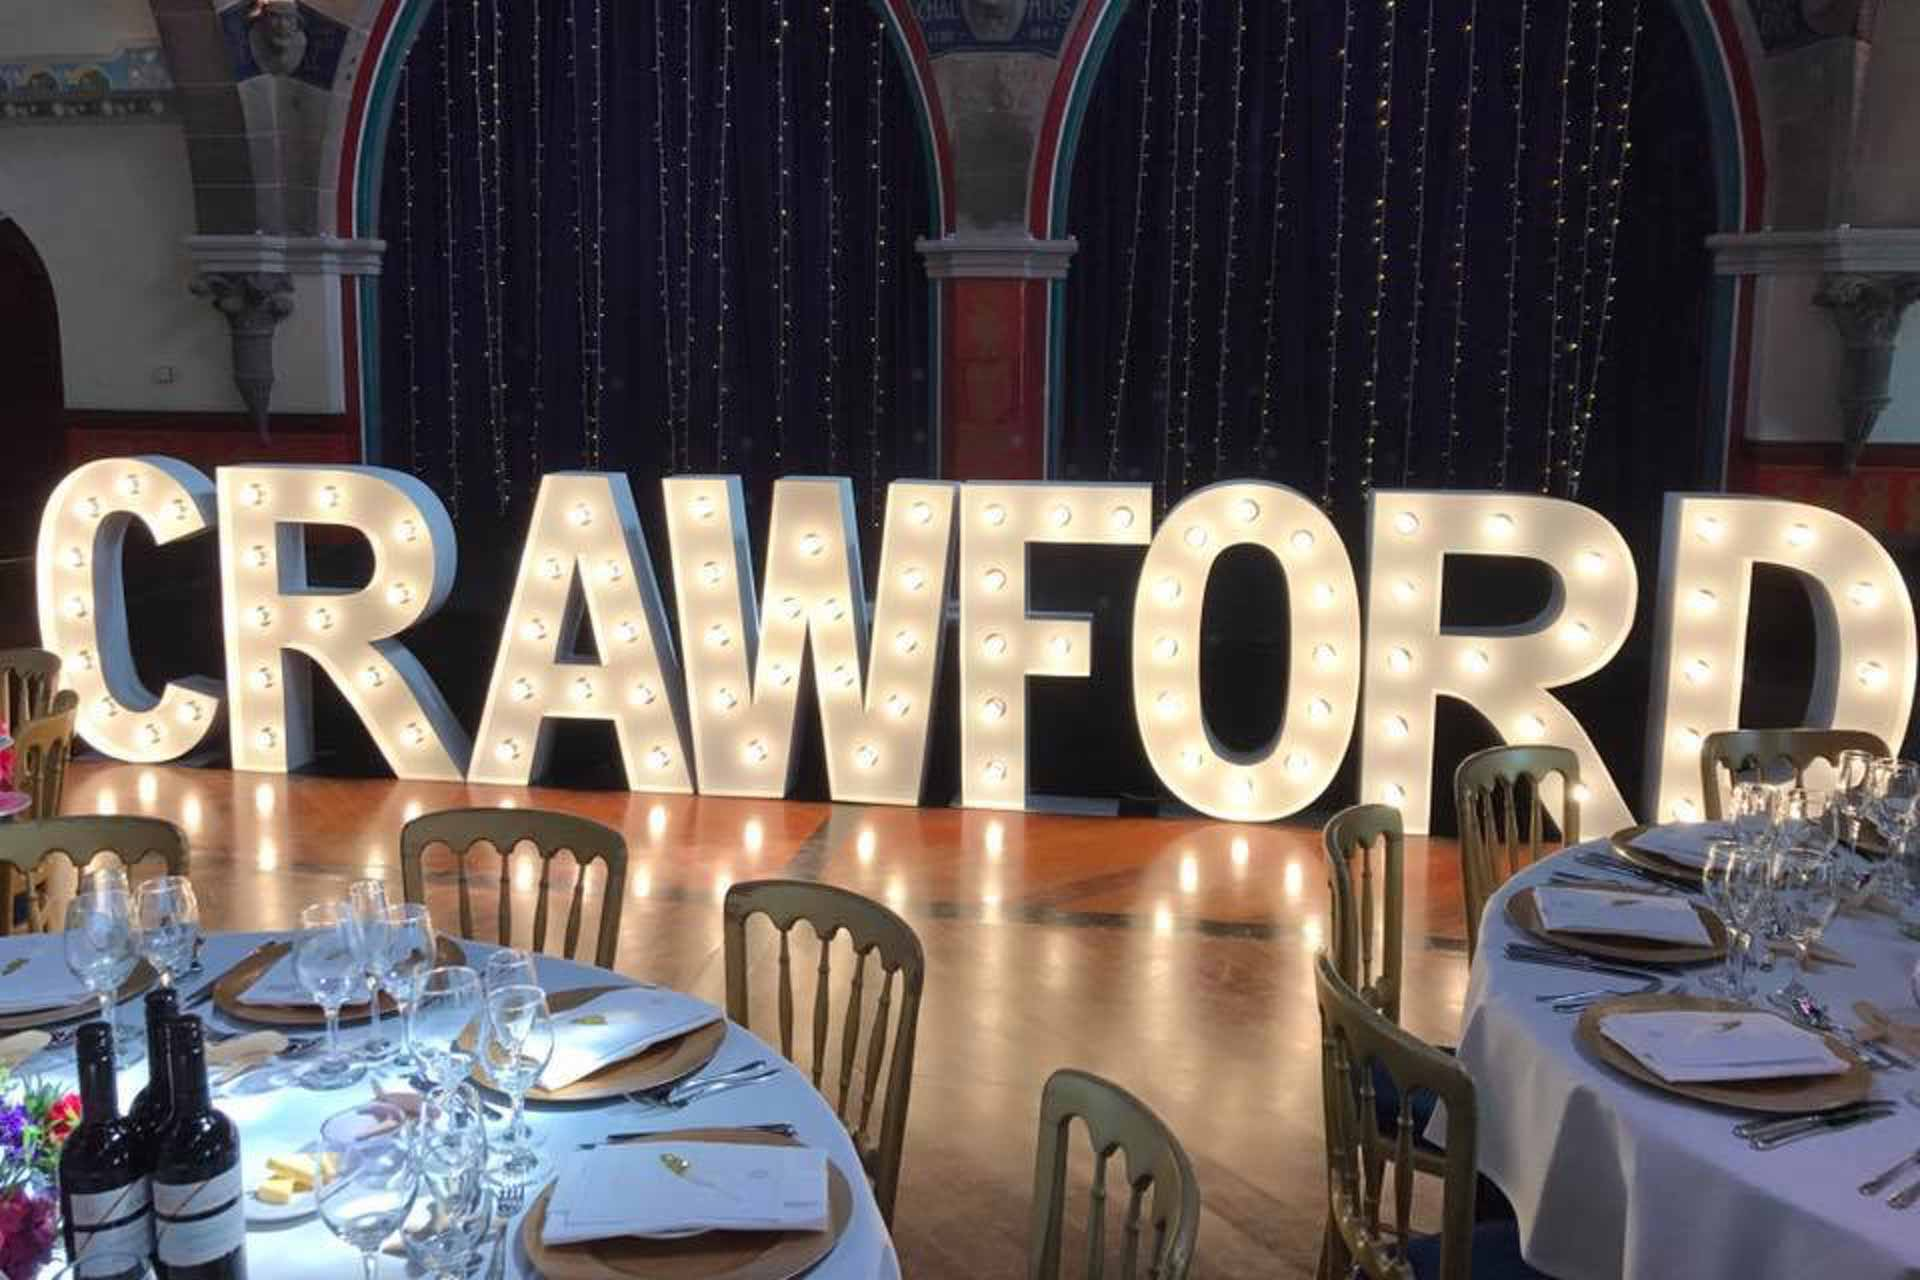 4ft Giant Light Up Letters spelling out the new married couples name booked with one of our Photo Booths